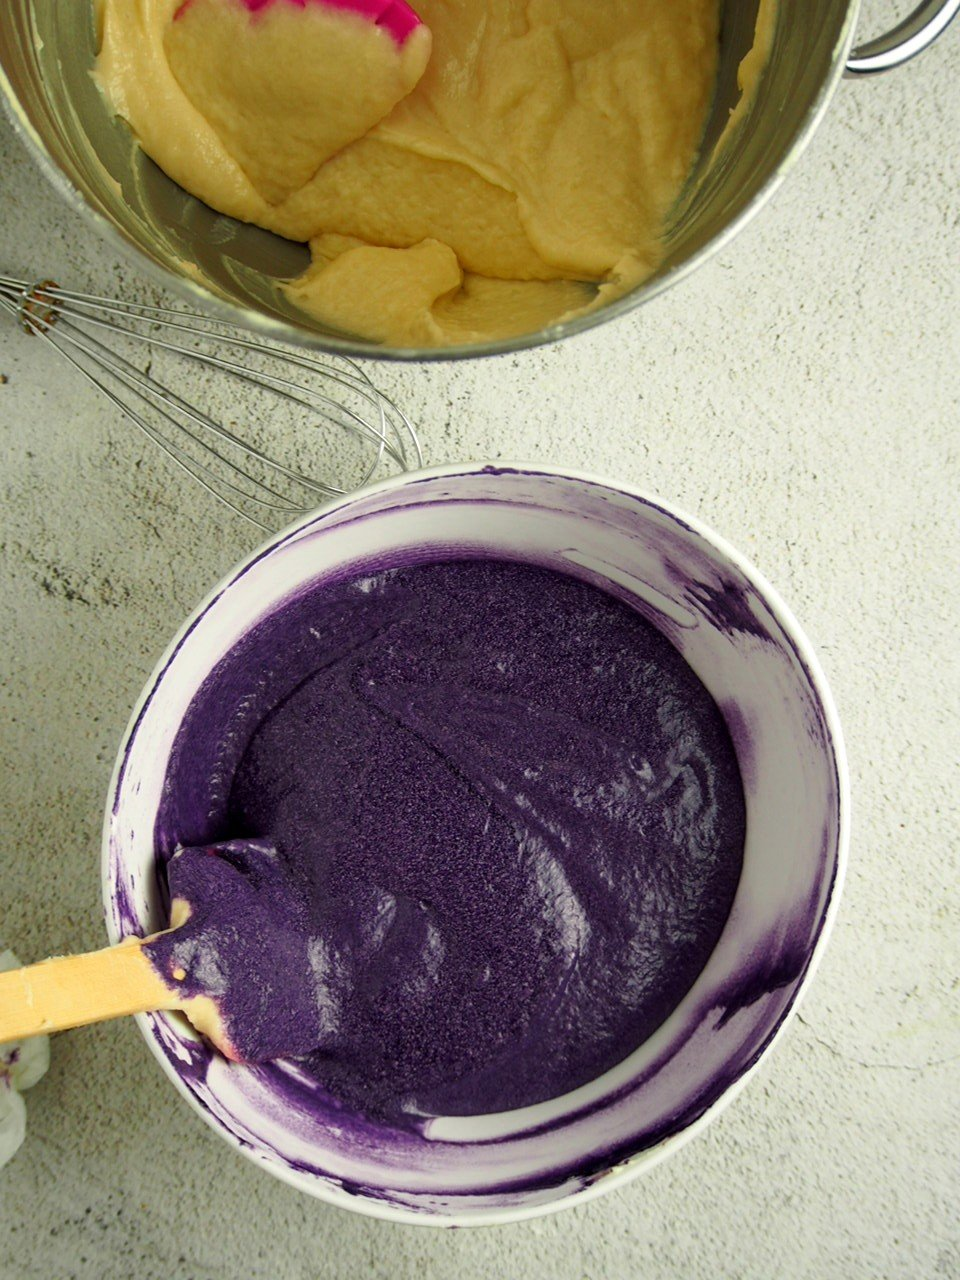 Ube flavored batter and vanilla batter in two bowls.